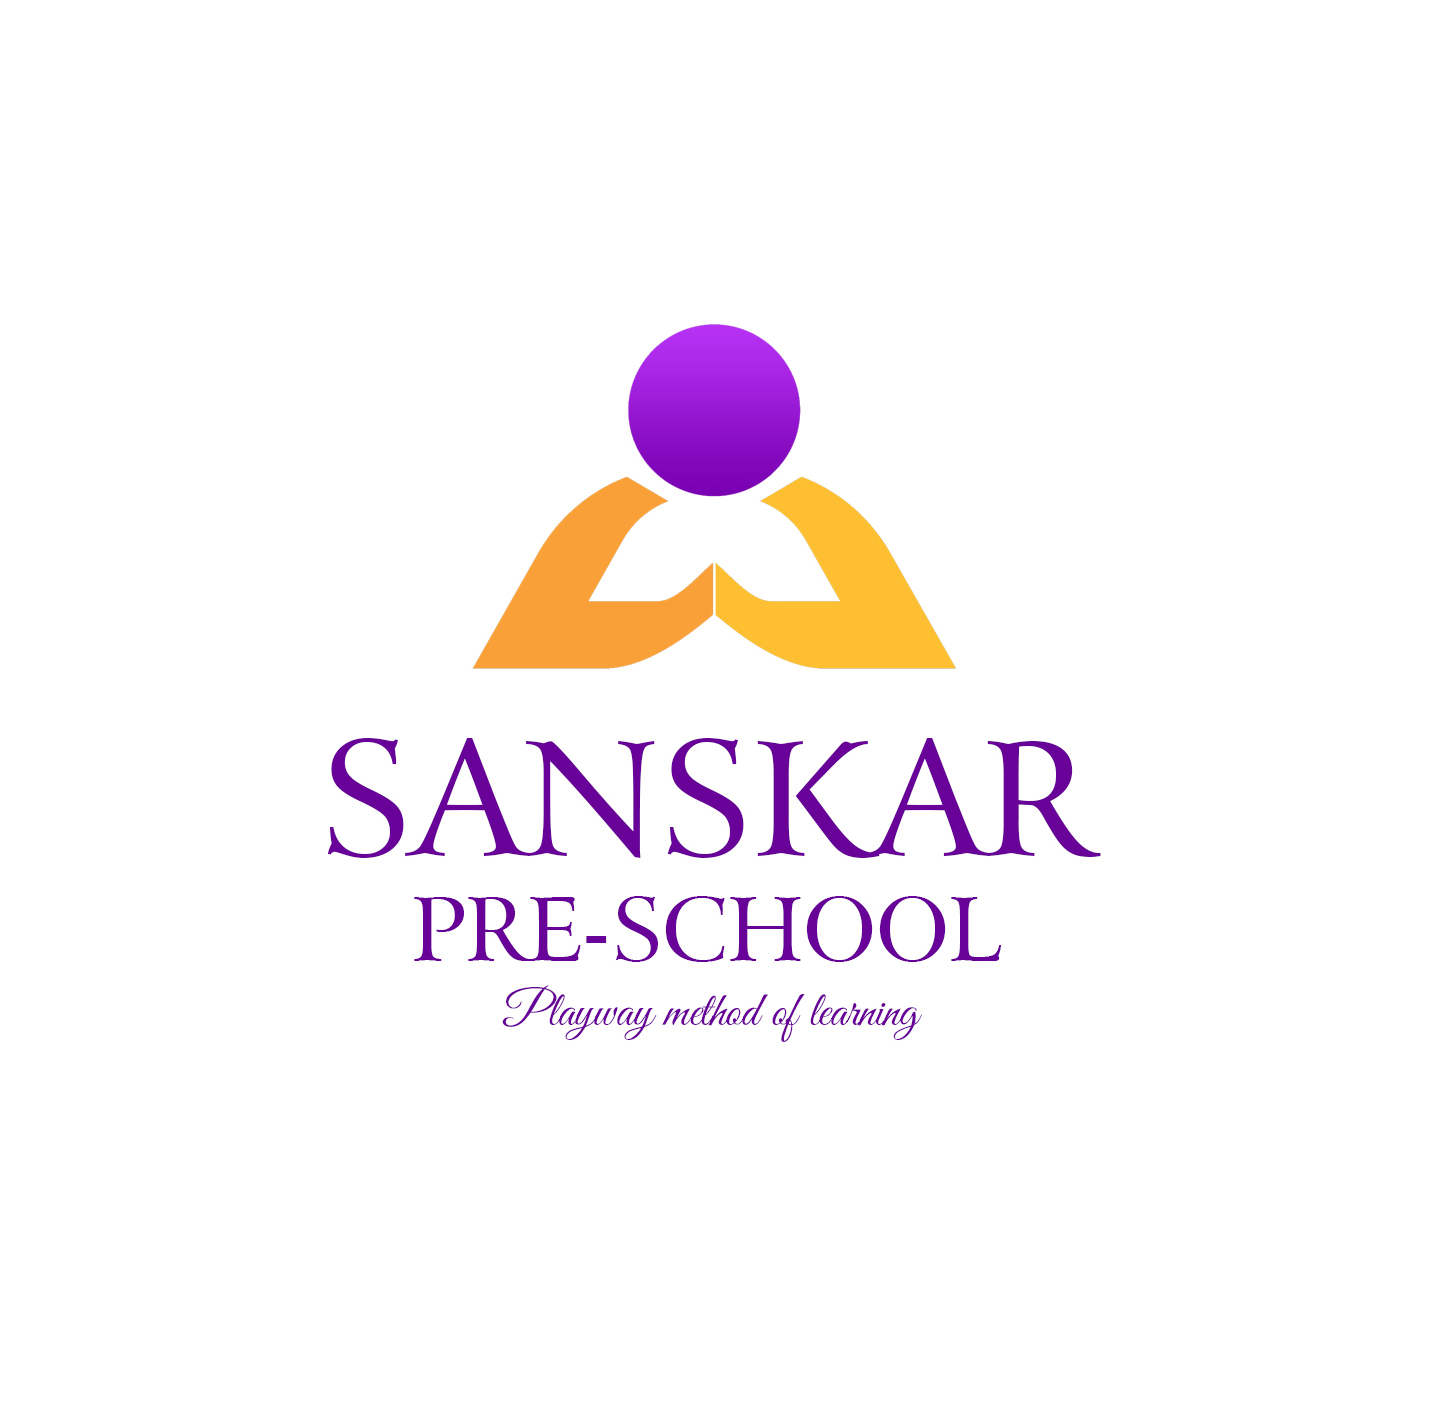 logo of sanskar